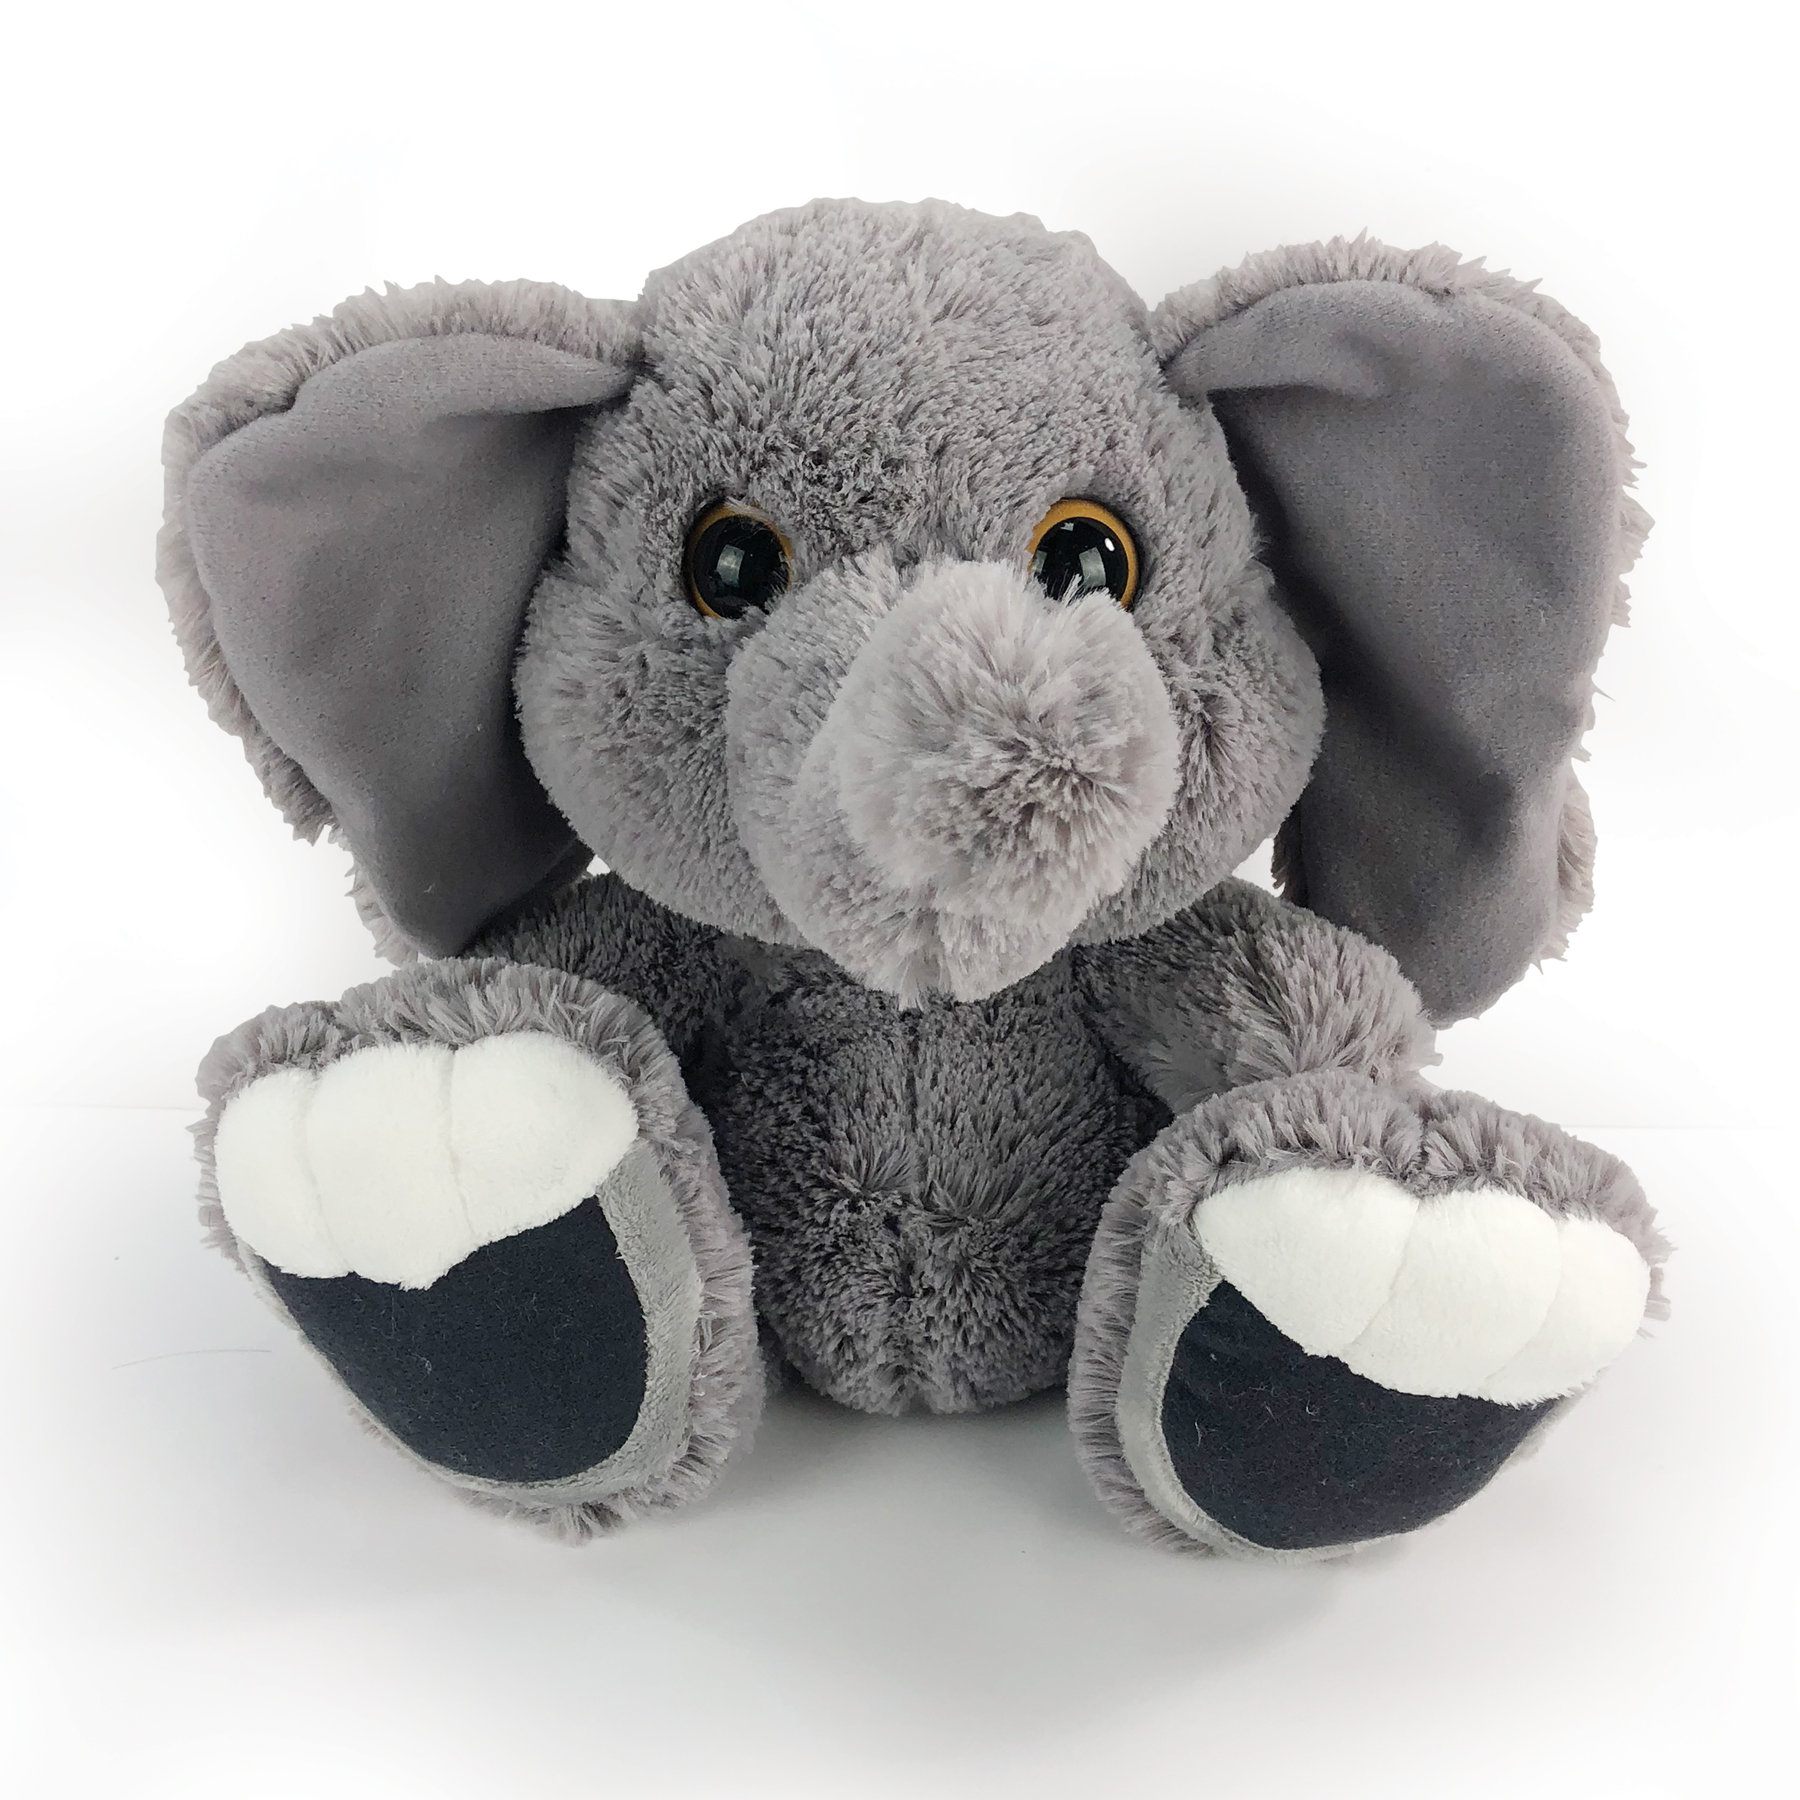 Stuffed Elephant | Plush Elephant Toy